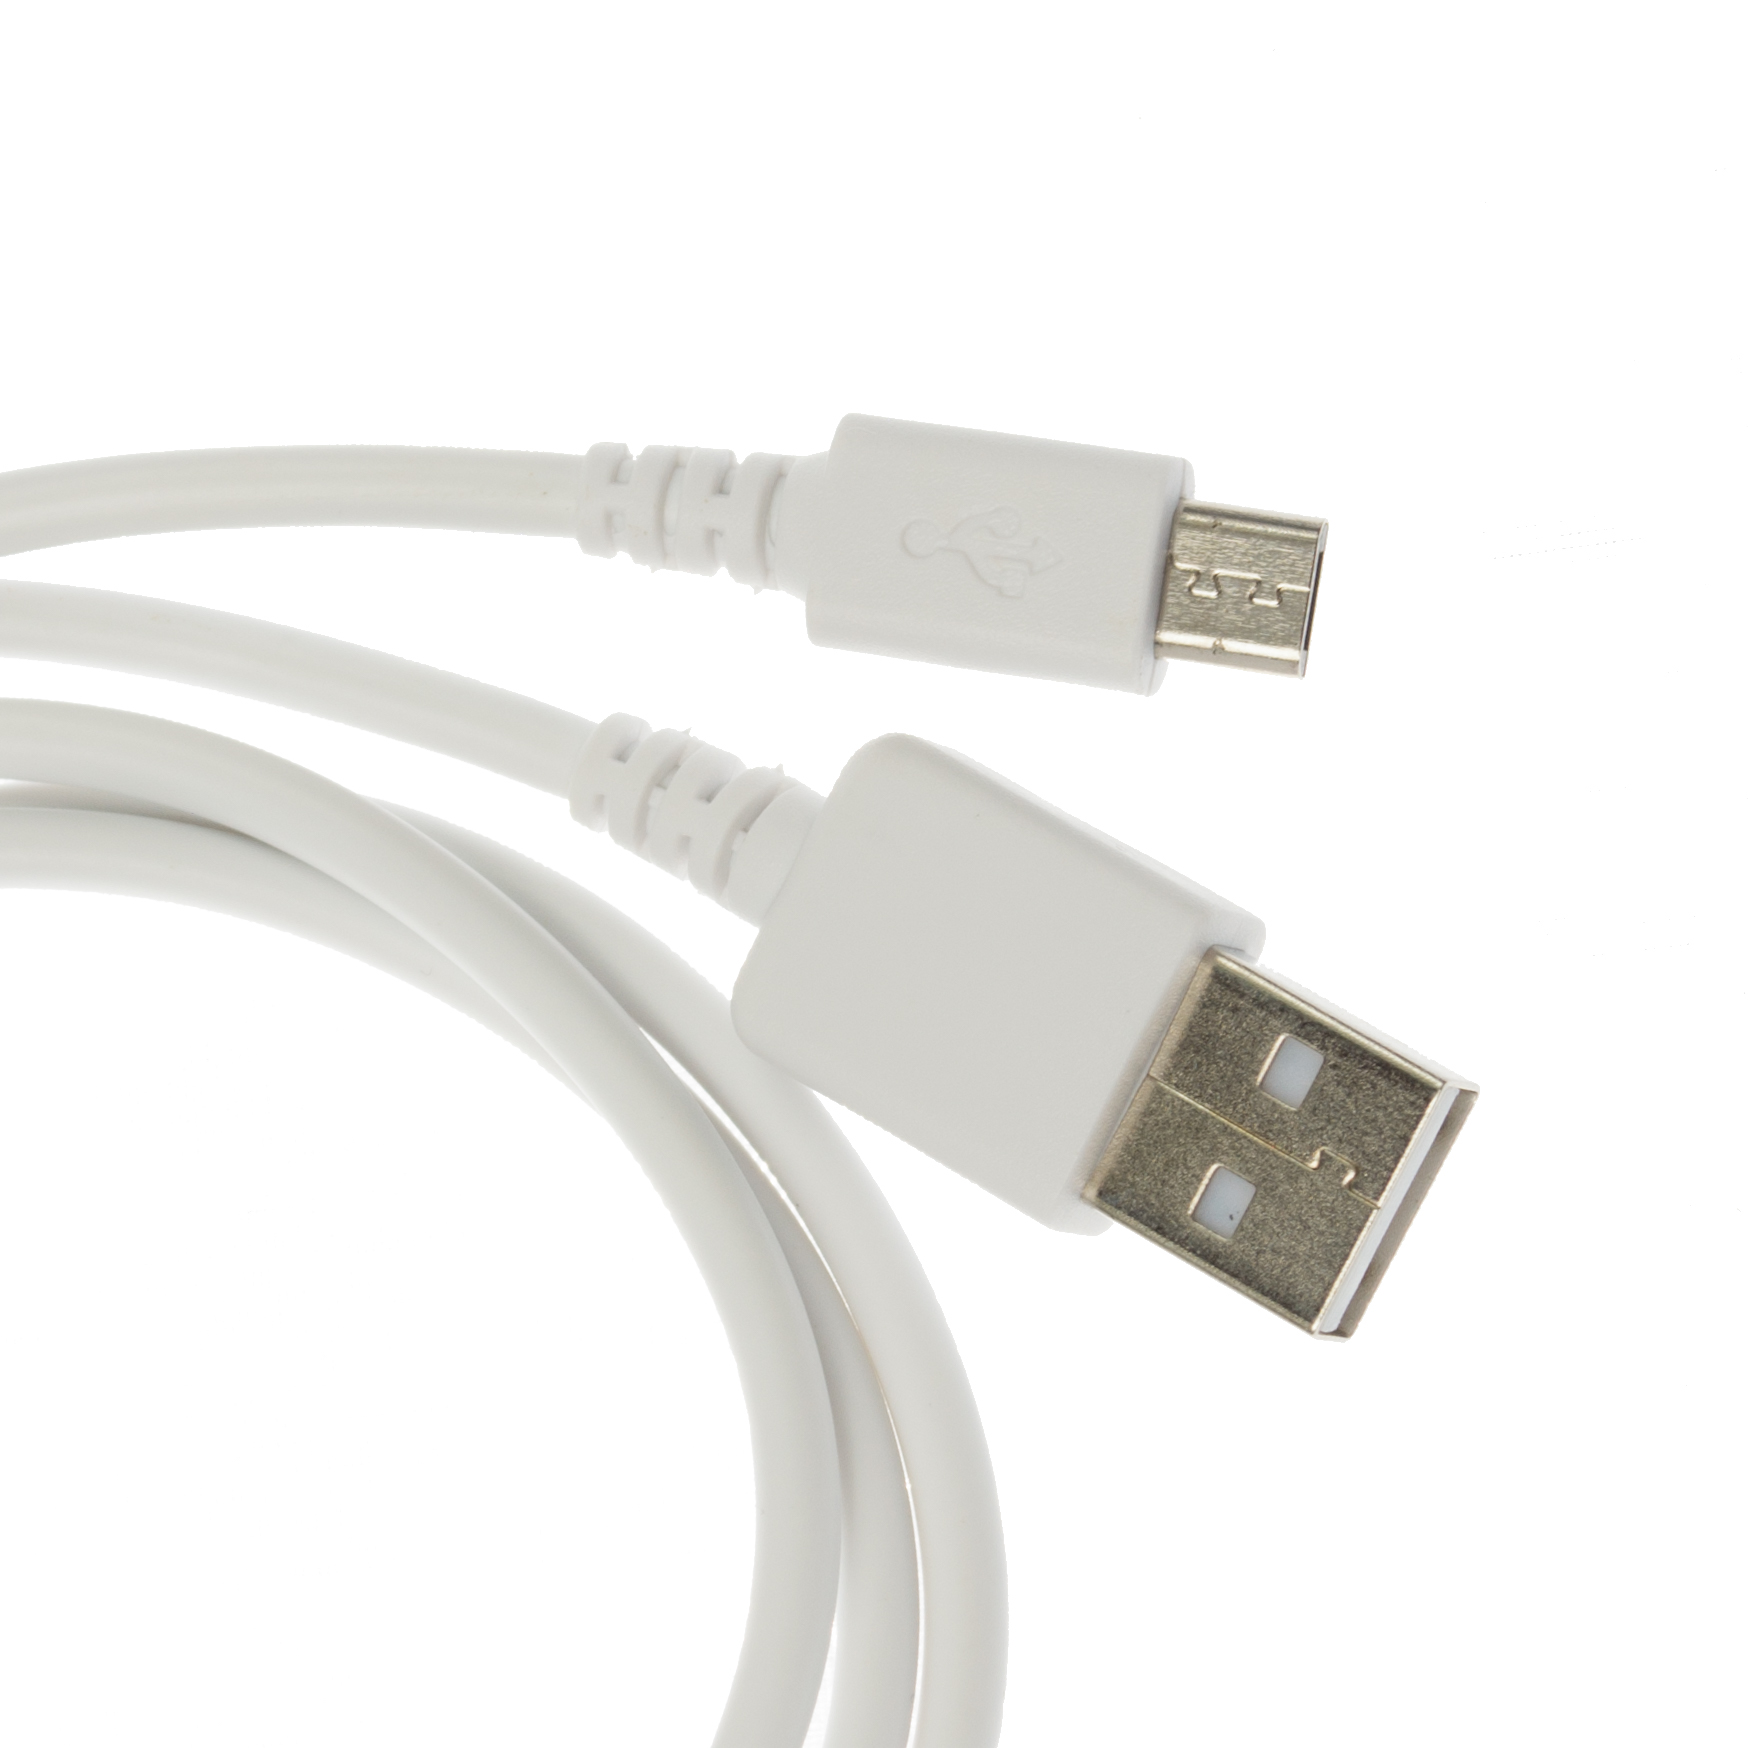 Cable USB compatible con Motorola MBP 855 connectpu Parent/'s unidad Monitor de bebé